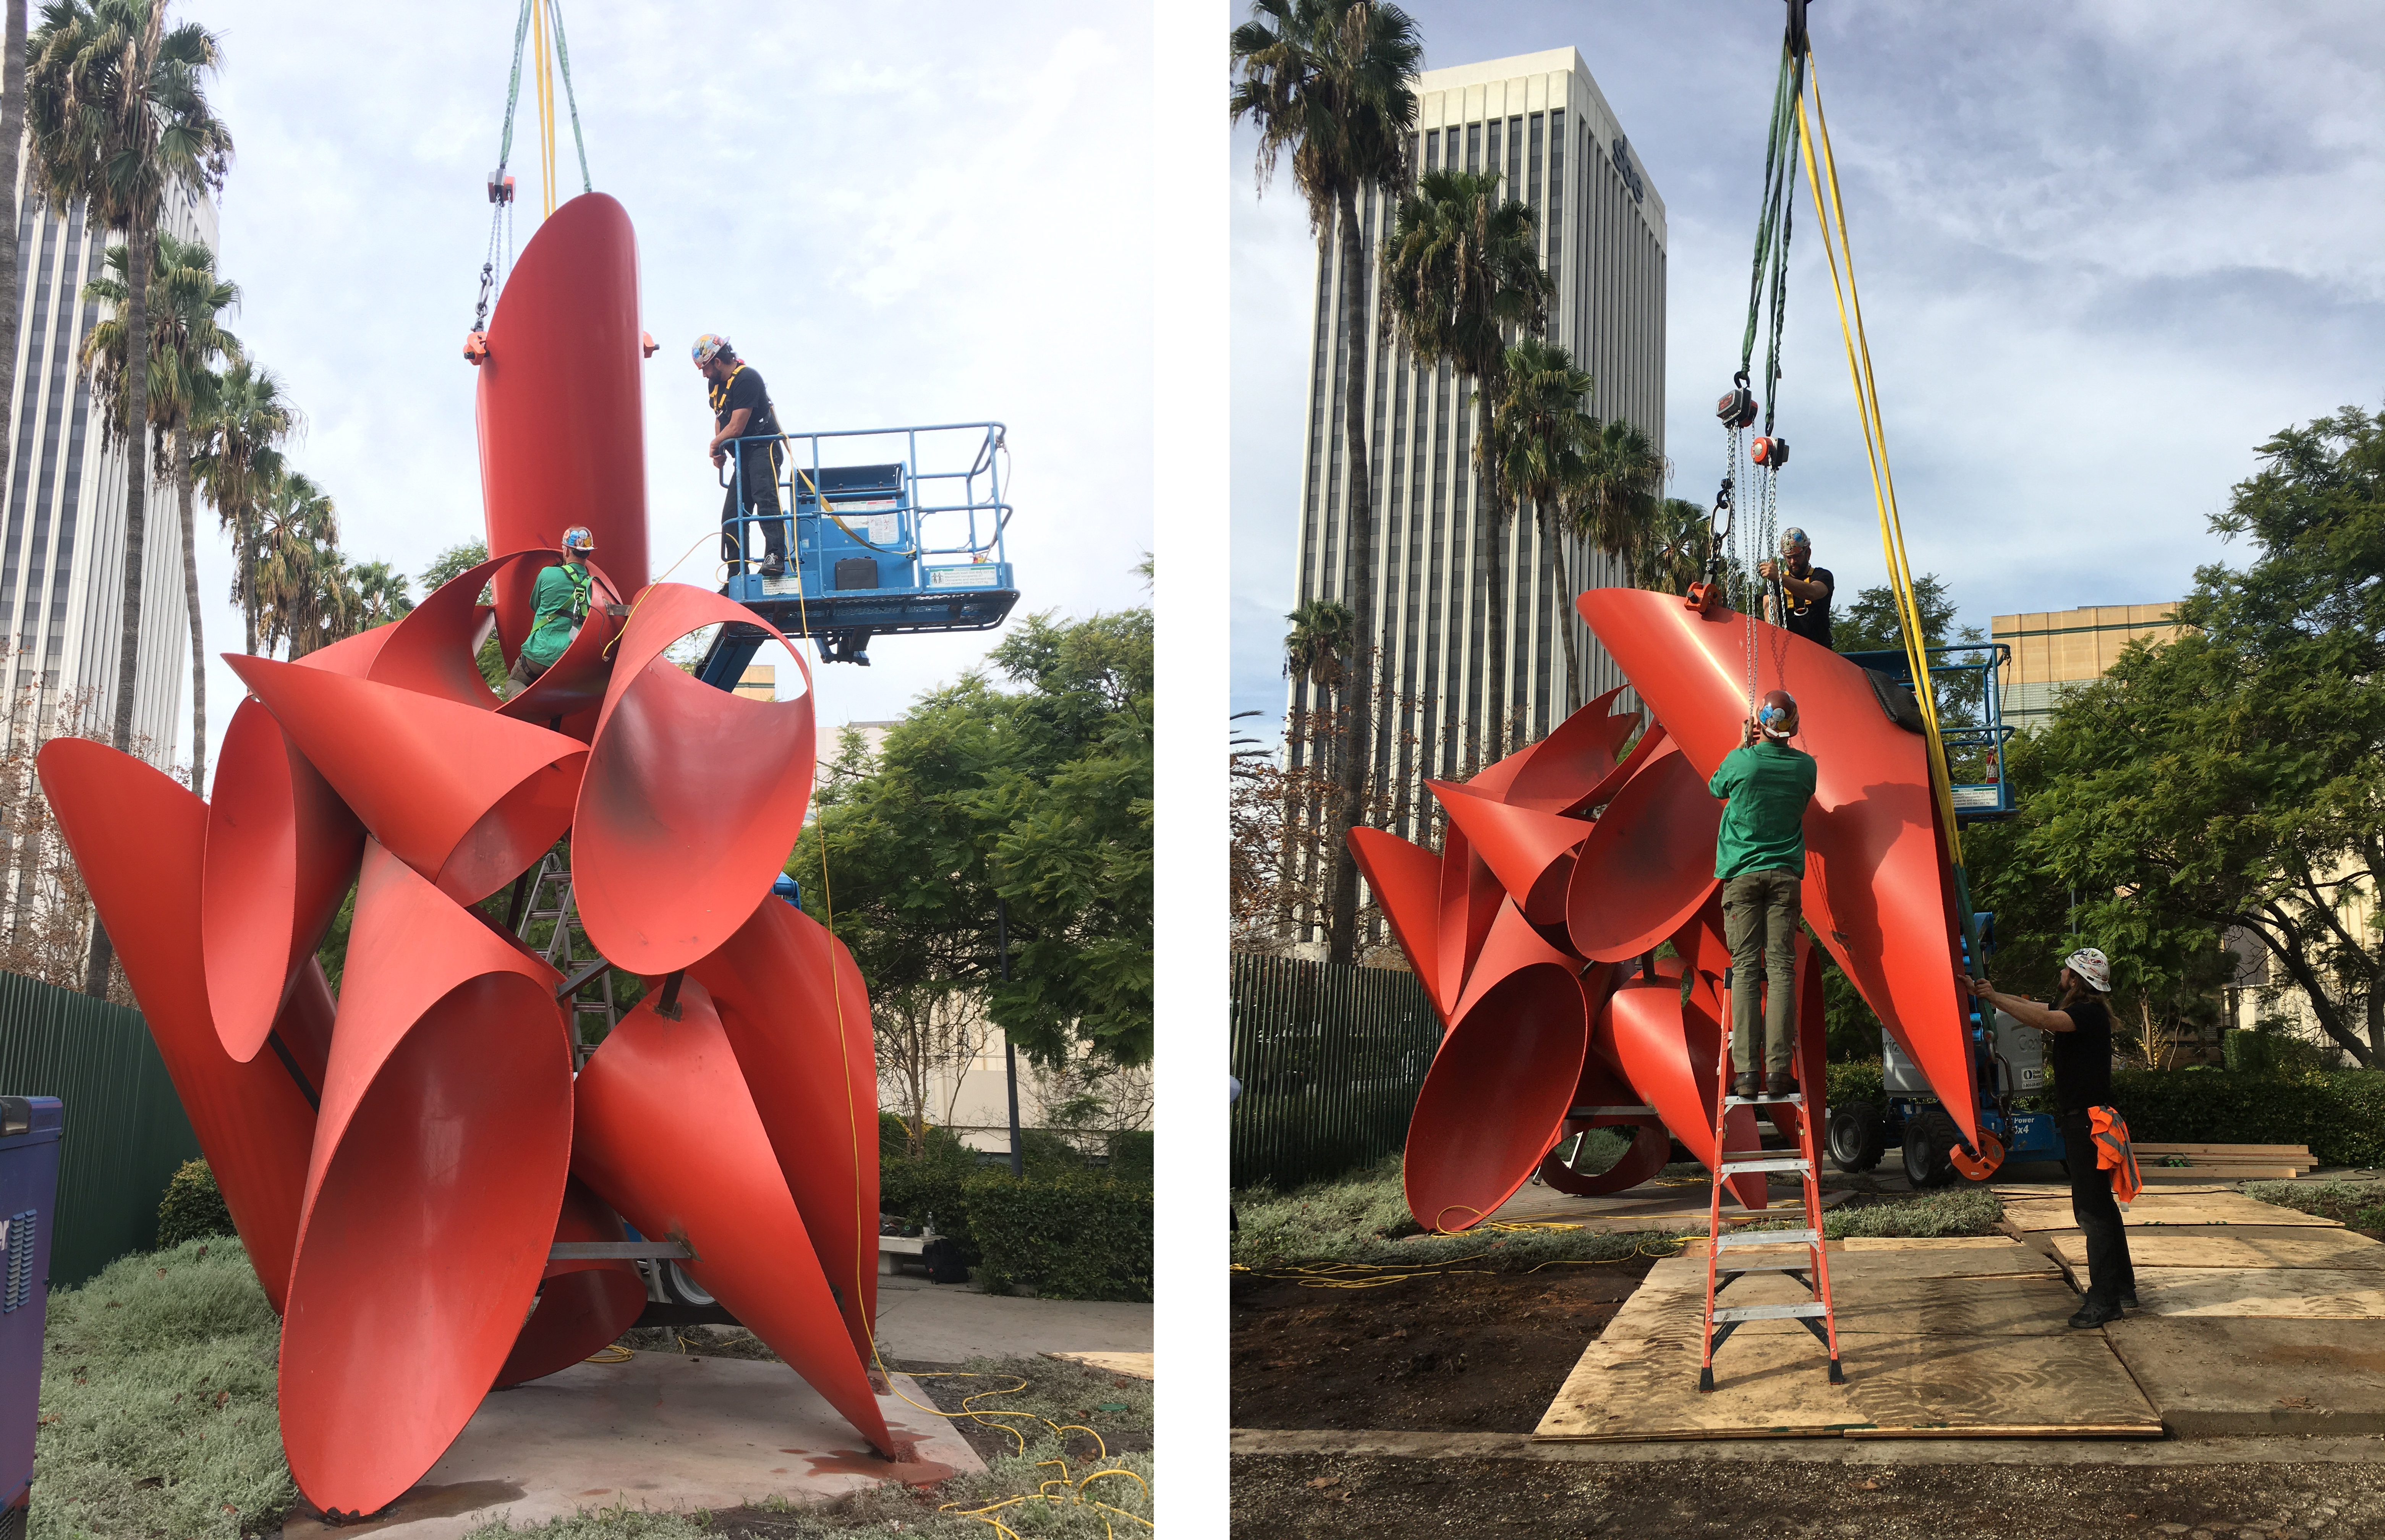 Both: Alexander Liberman, Phoenix, 1974, Los Angeles County Museum of Art, © The Alexander Liberman Trust, photos courtesy of Emory Marshall; Left: Luke Boehnke of Wolf Magritte observes from the boom lift as Tyler makes the final cut to free the top piece; Right: Tyler and Luke rotate the freed top piece with chain hoists while Peter Rybchenkov of Wolf Magritte stabilizes the piece so it can be laid flat onto the transport flatbed